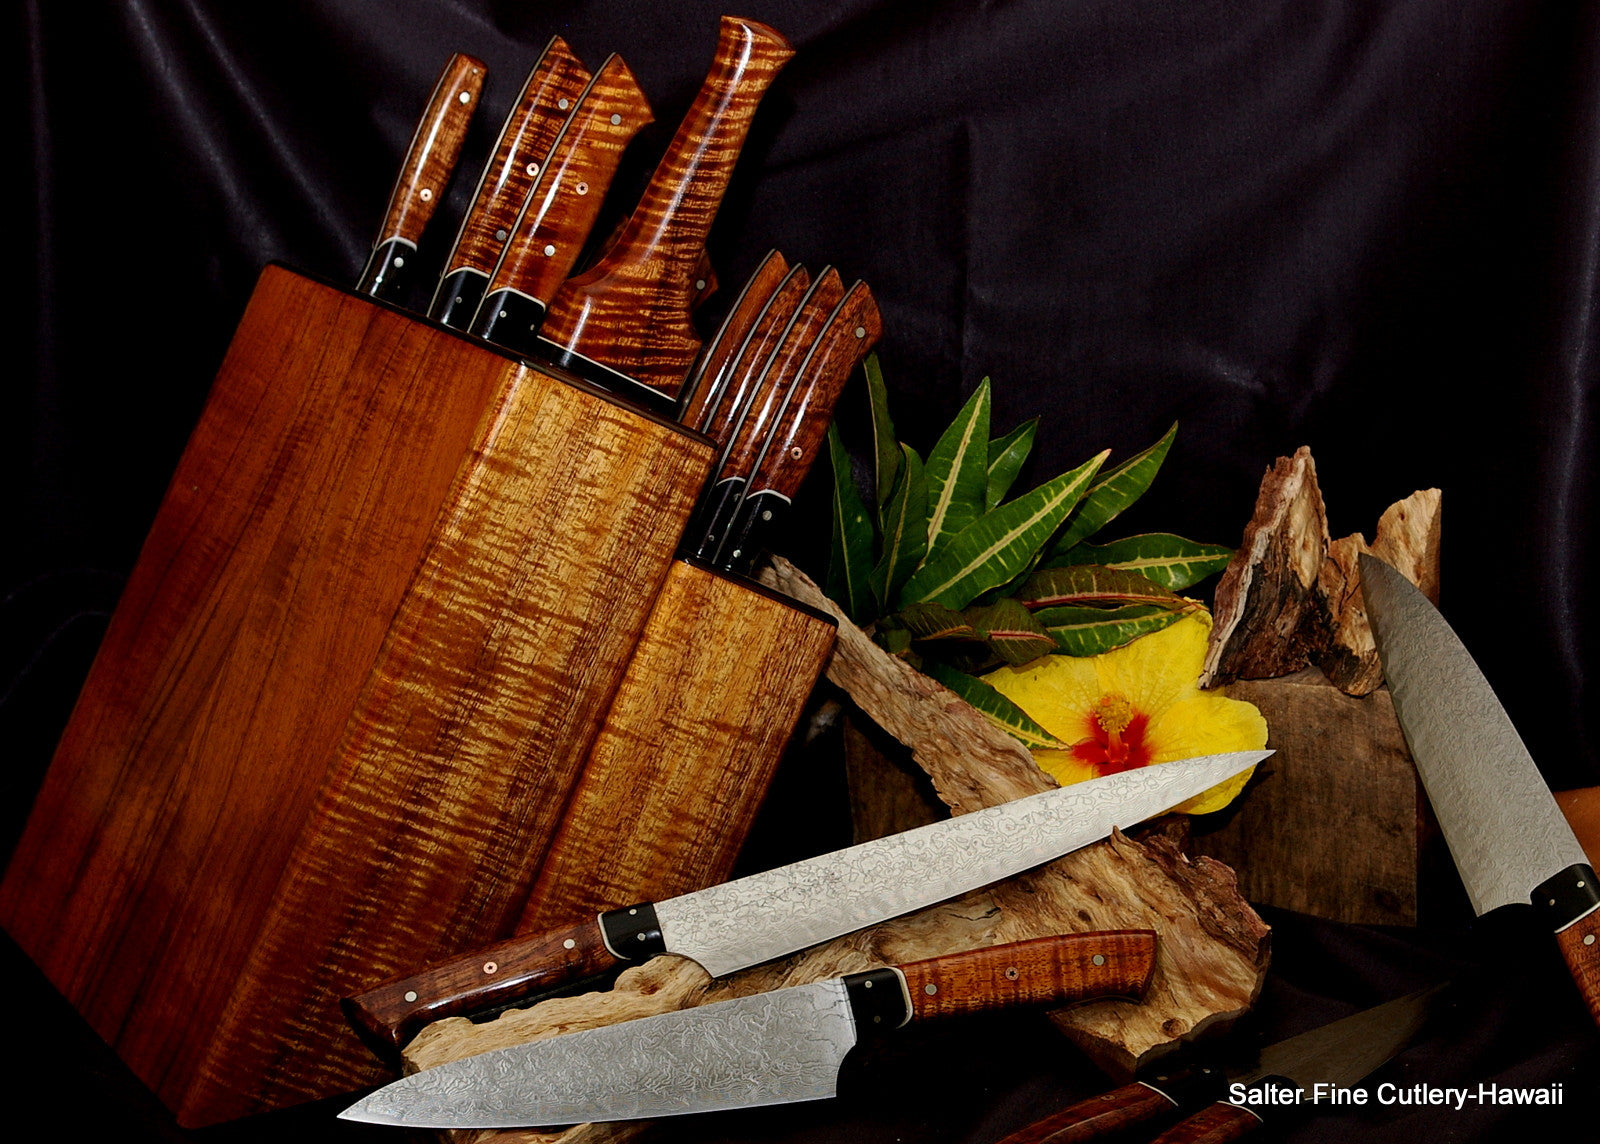 Exotic wood handles and stand large handcrafted steak chef set by Salter Fine Cutlery